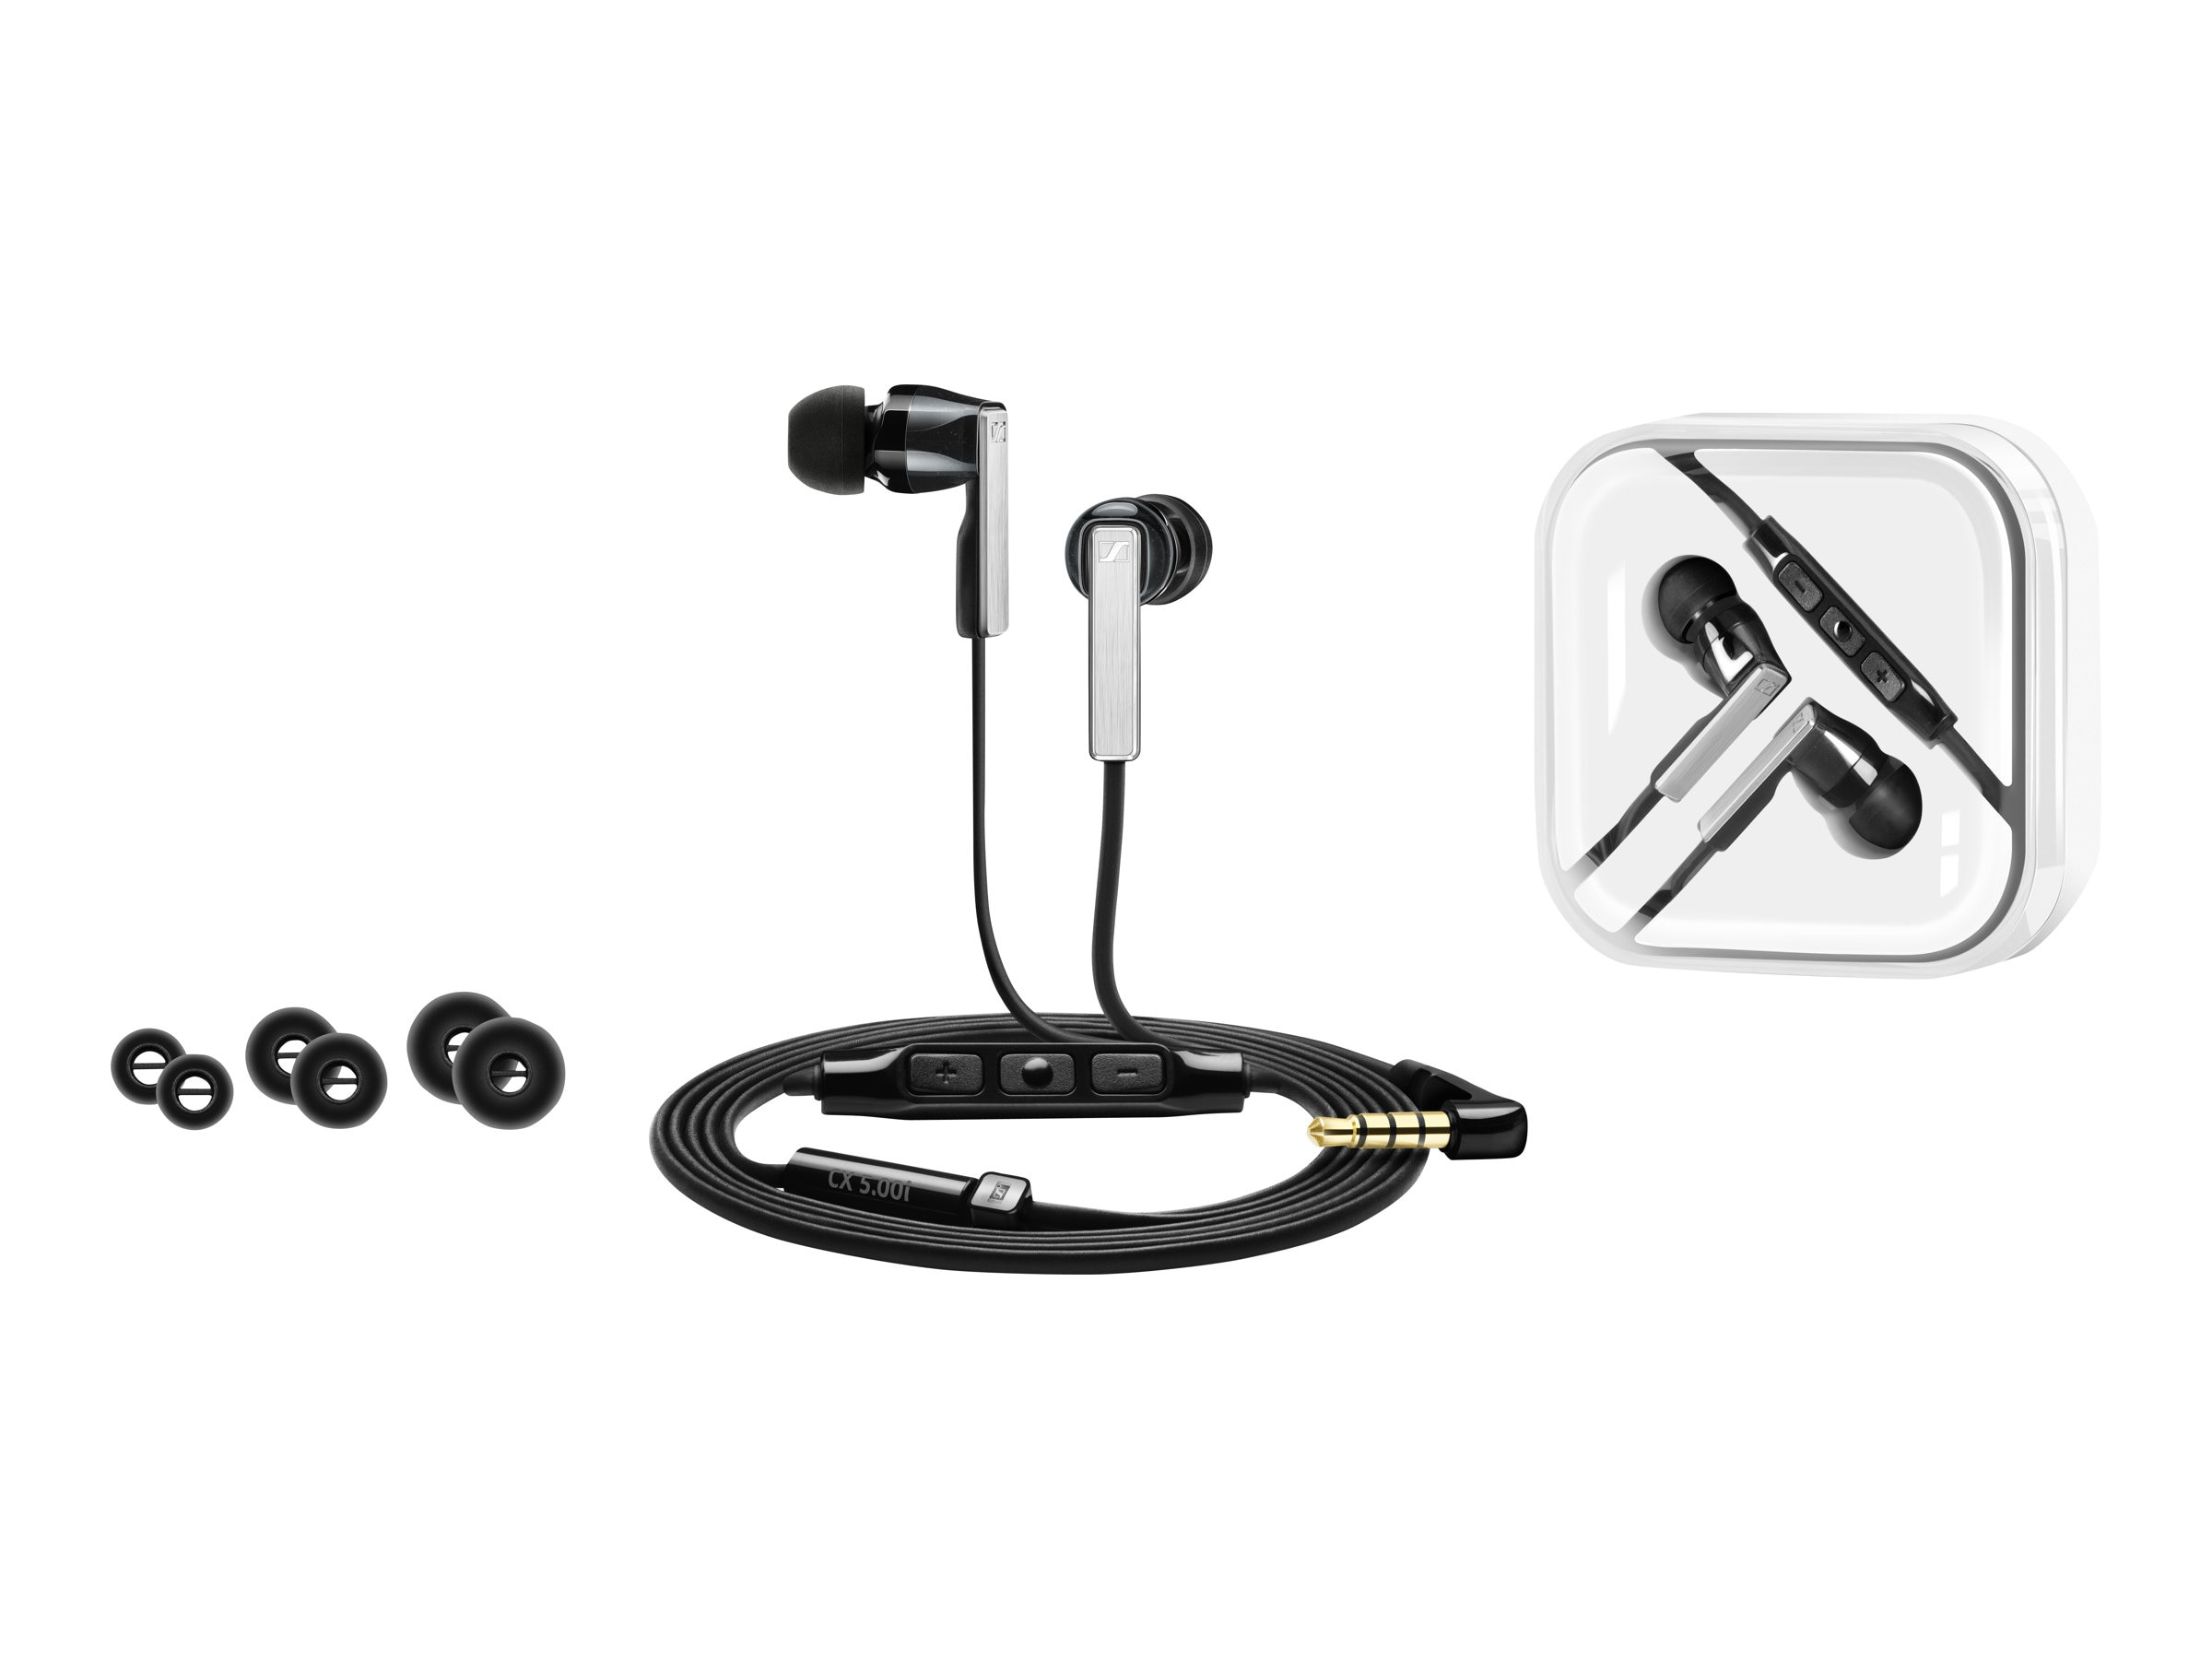 Sennheiser CX 5.00I Ear Buds - Black